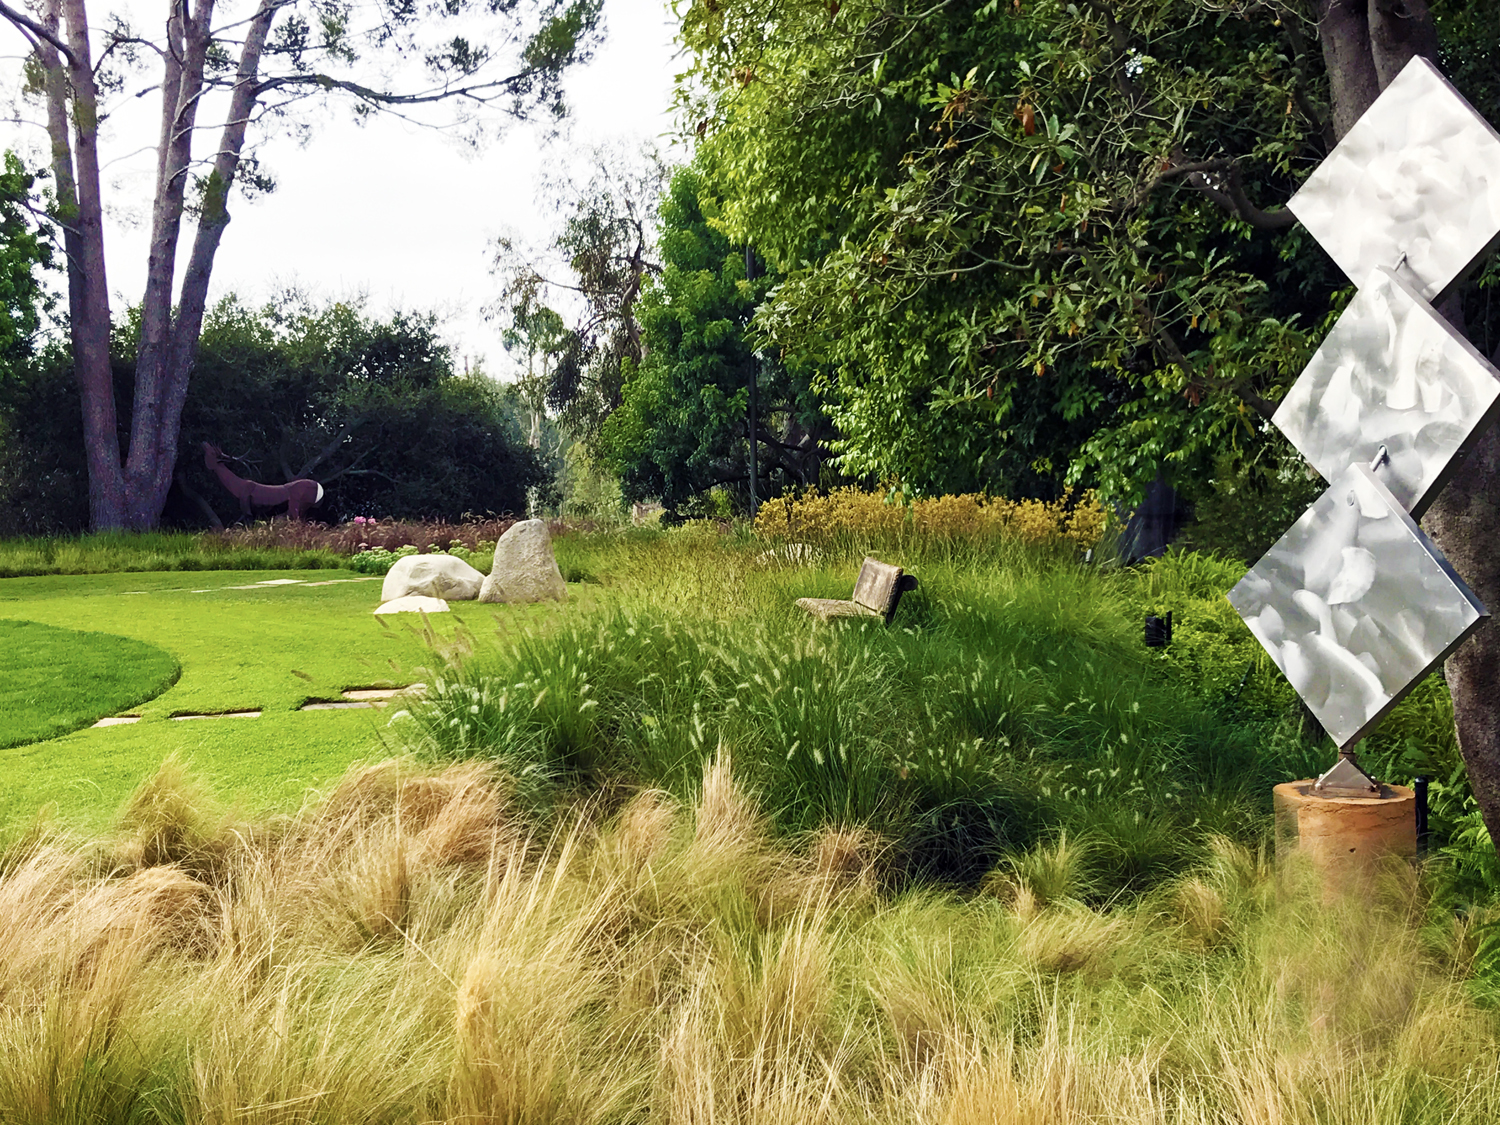 After: Mexican Feather Grass and 'Fairy Tails' feel more contemporary. Most of the thirsty turf is now Kurapia, a drought-tolerant turf substitute.